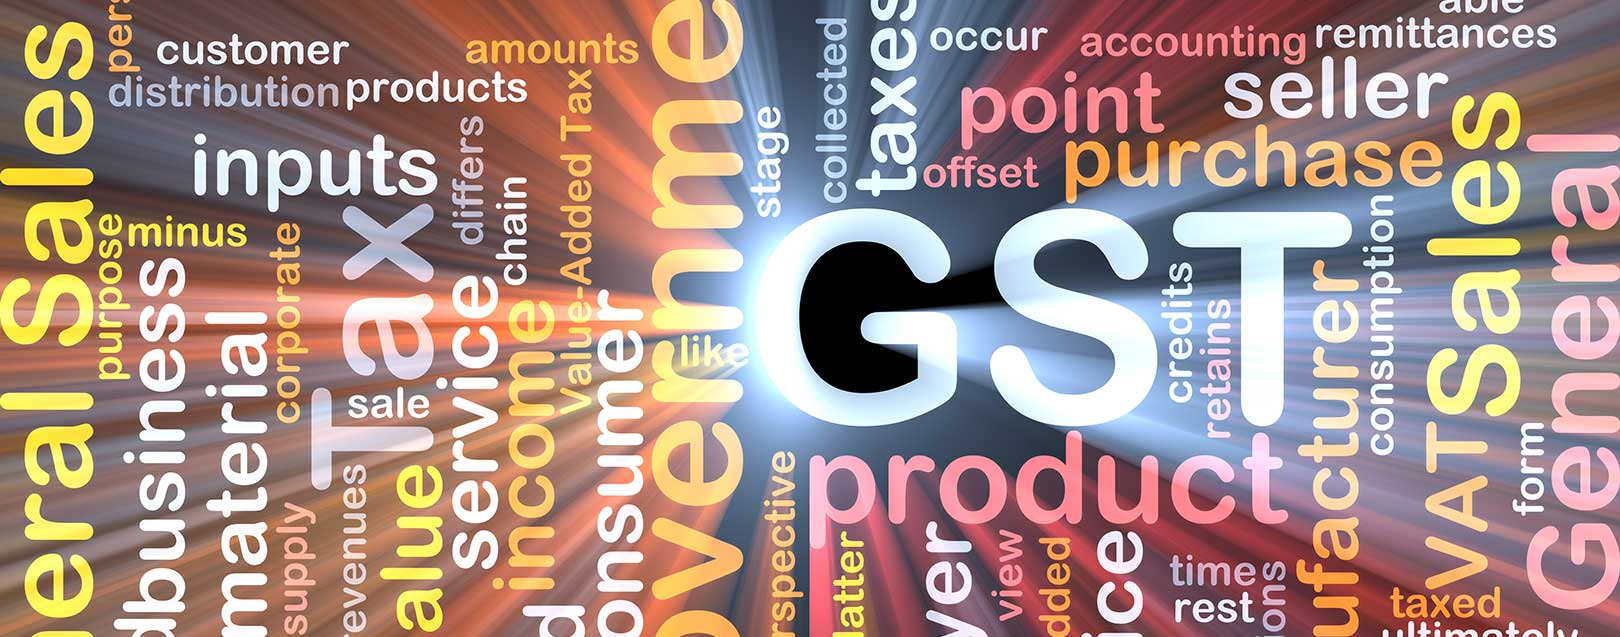 Exporters to get refund within 7 days under GST